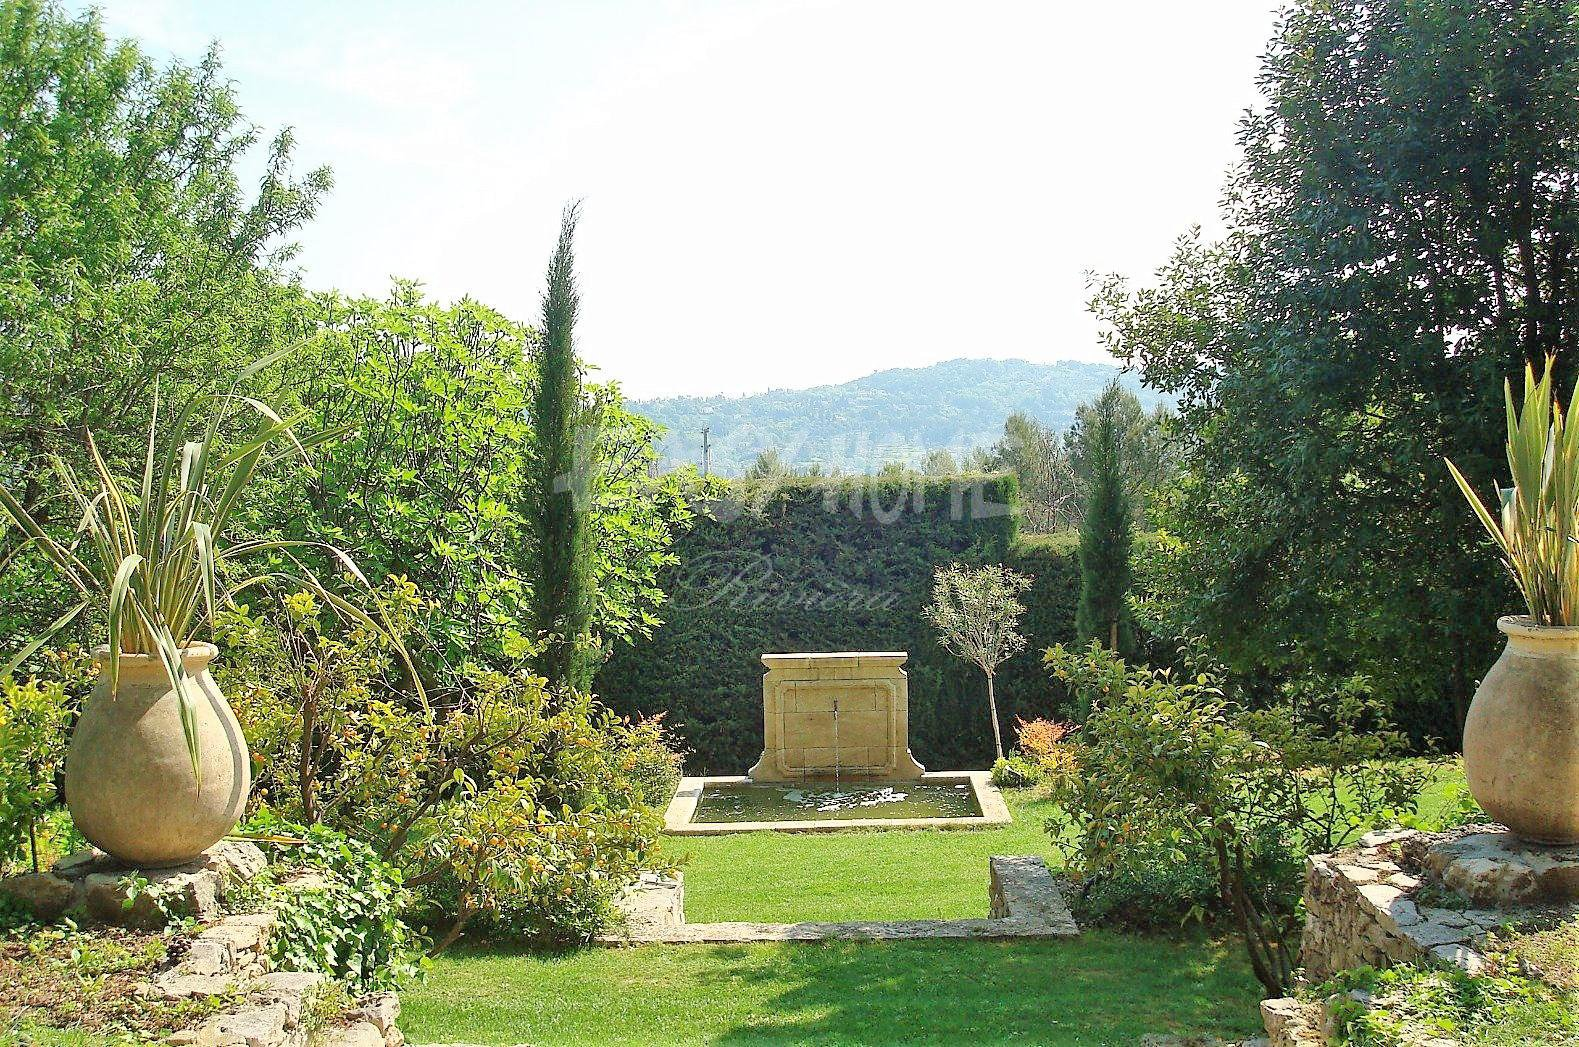 Property for sale French Riviera park of 1.5 hectares